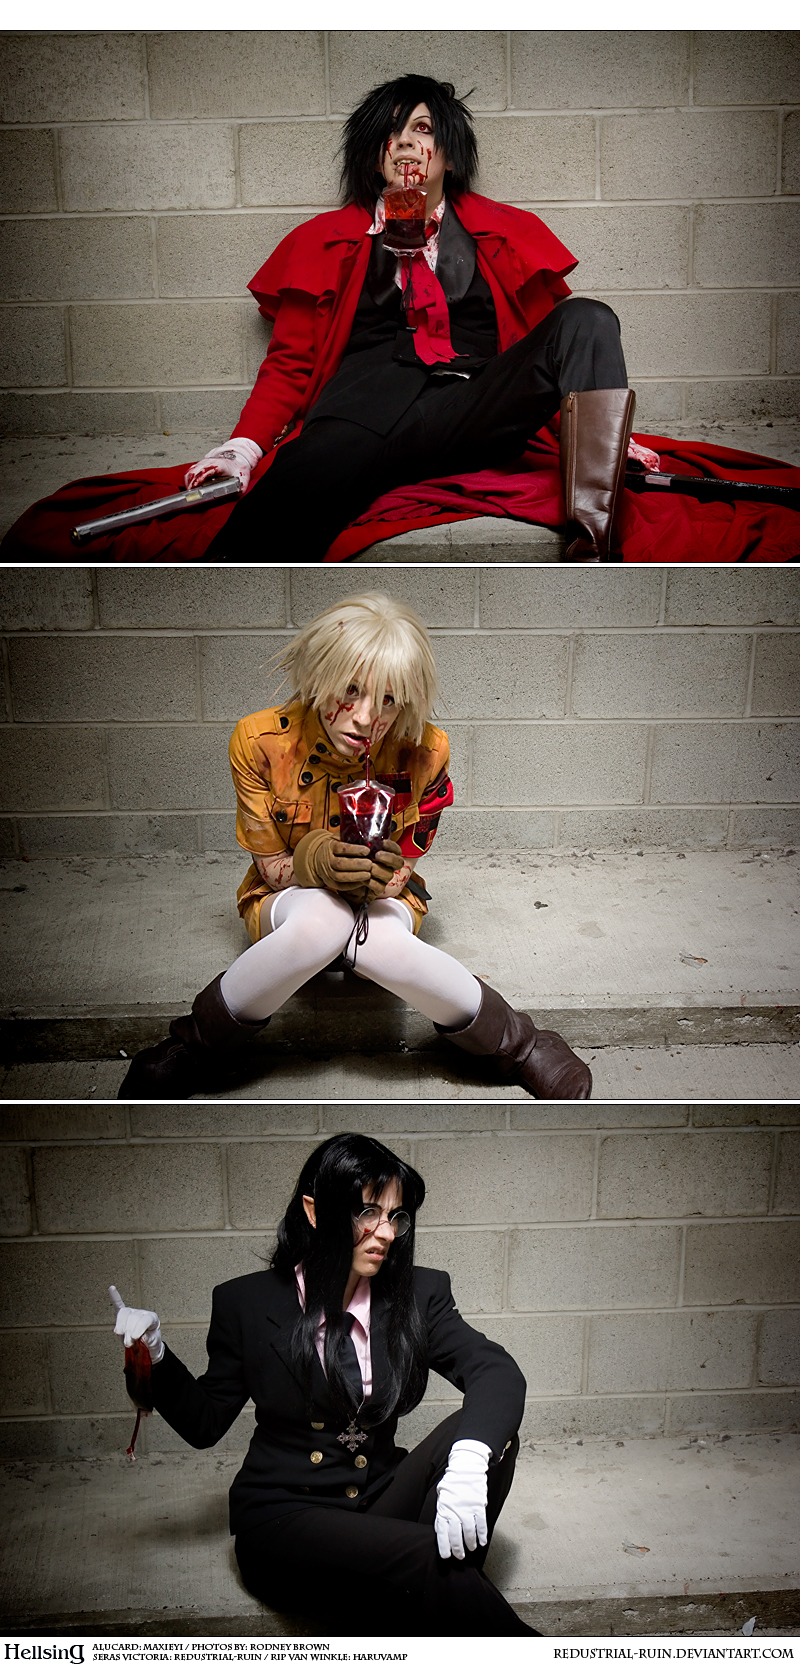 Hellsing Cosplay: What's Your Blood Type? by Redustrial-Ruin